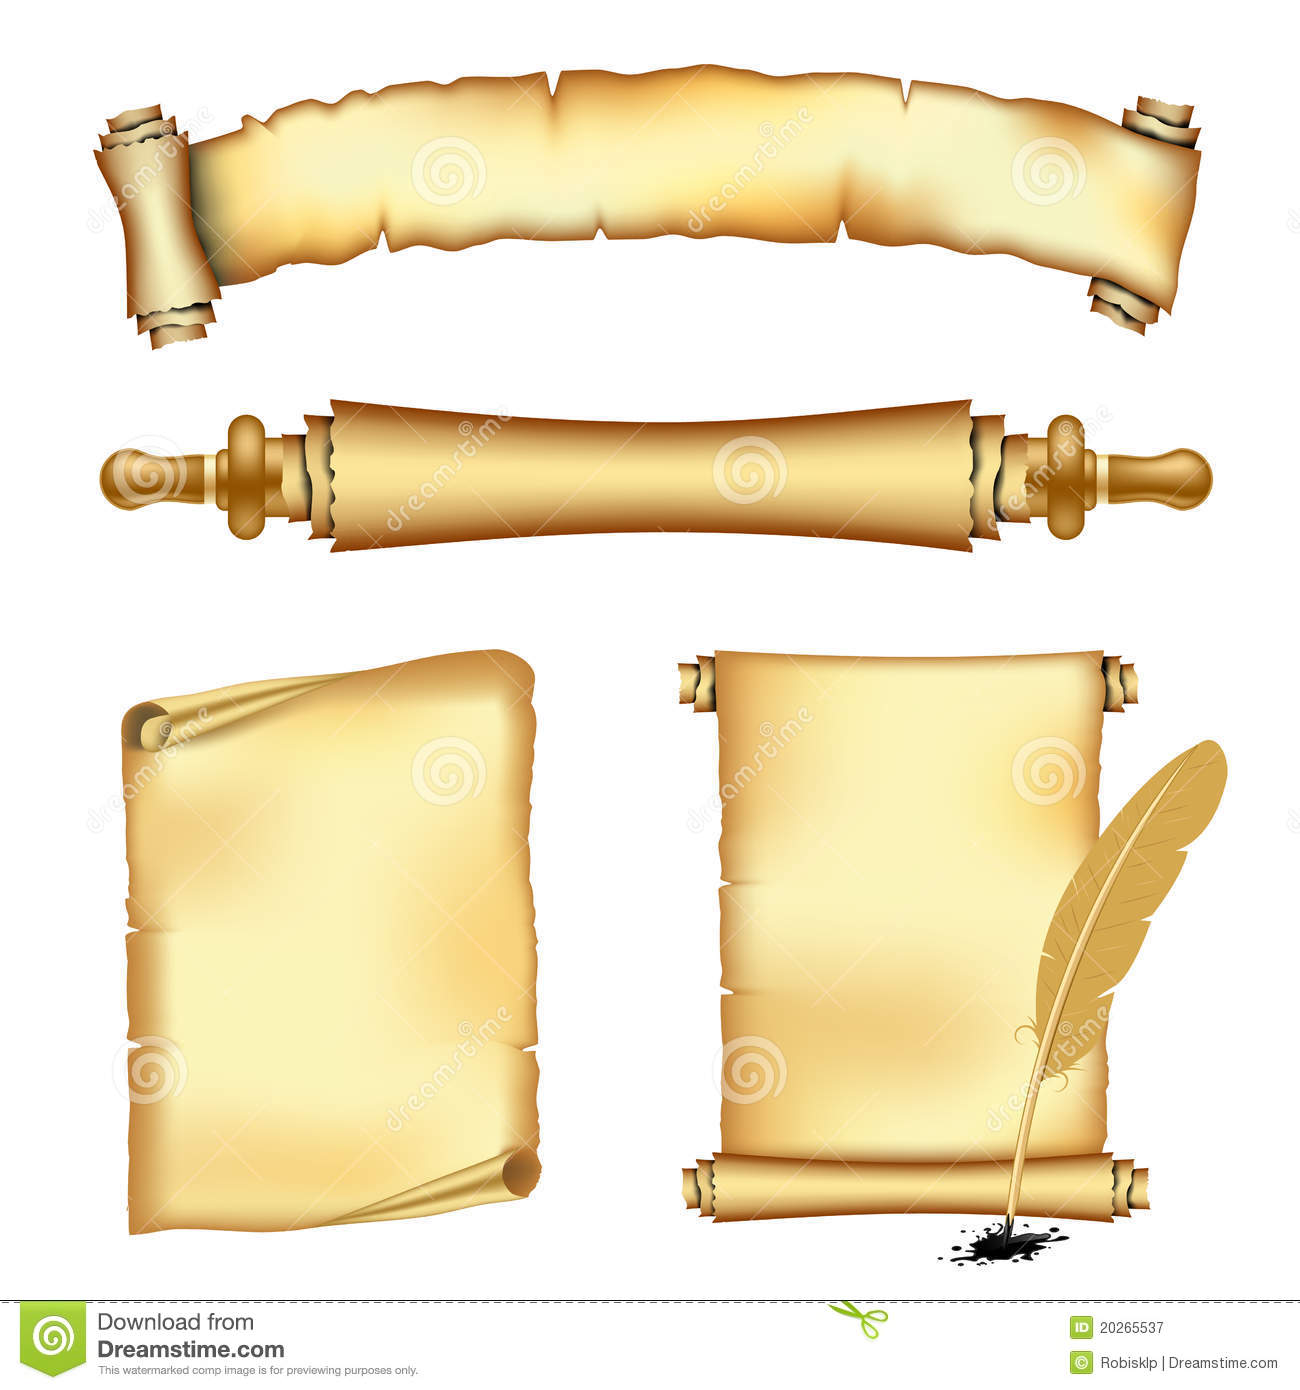 Scrolls And Banners Royalty Free Stock Photography - Image: 20265537